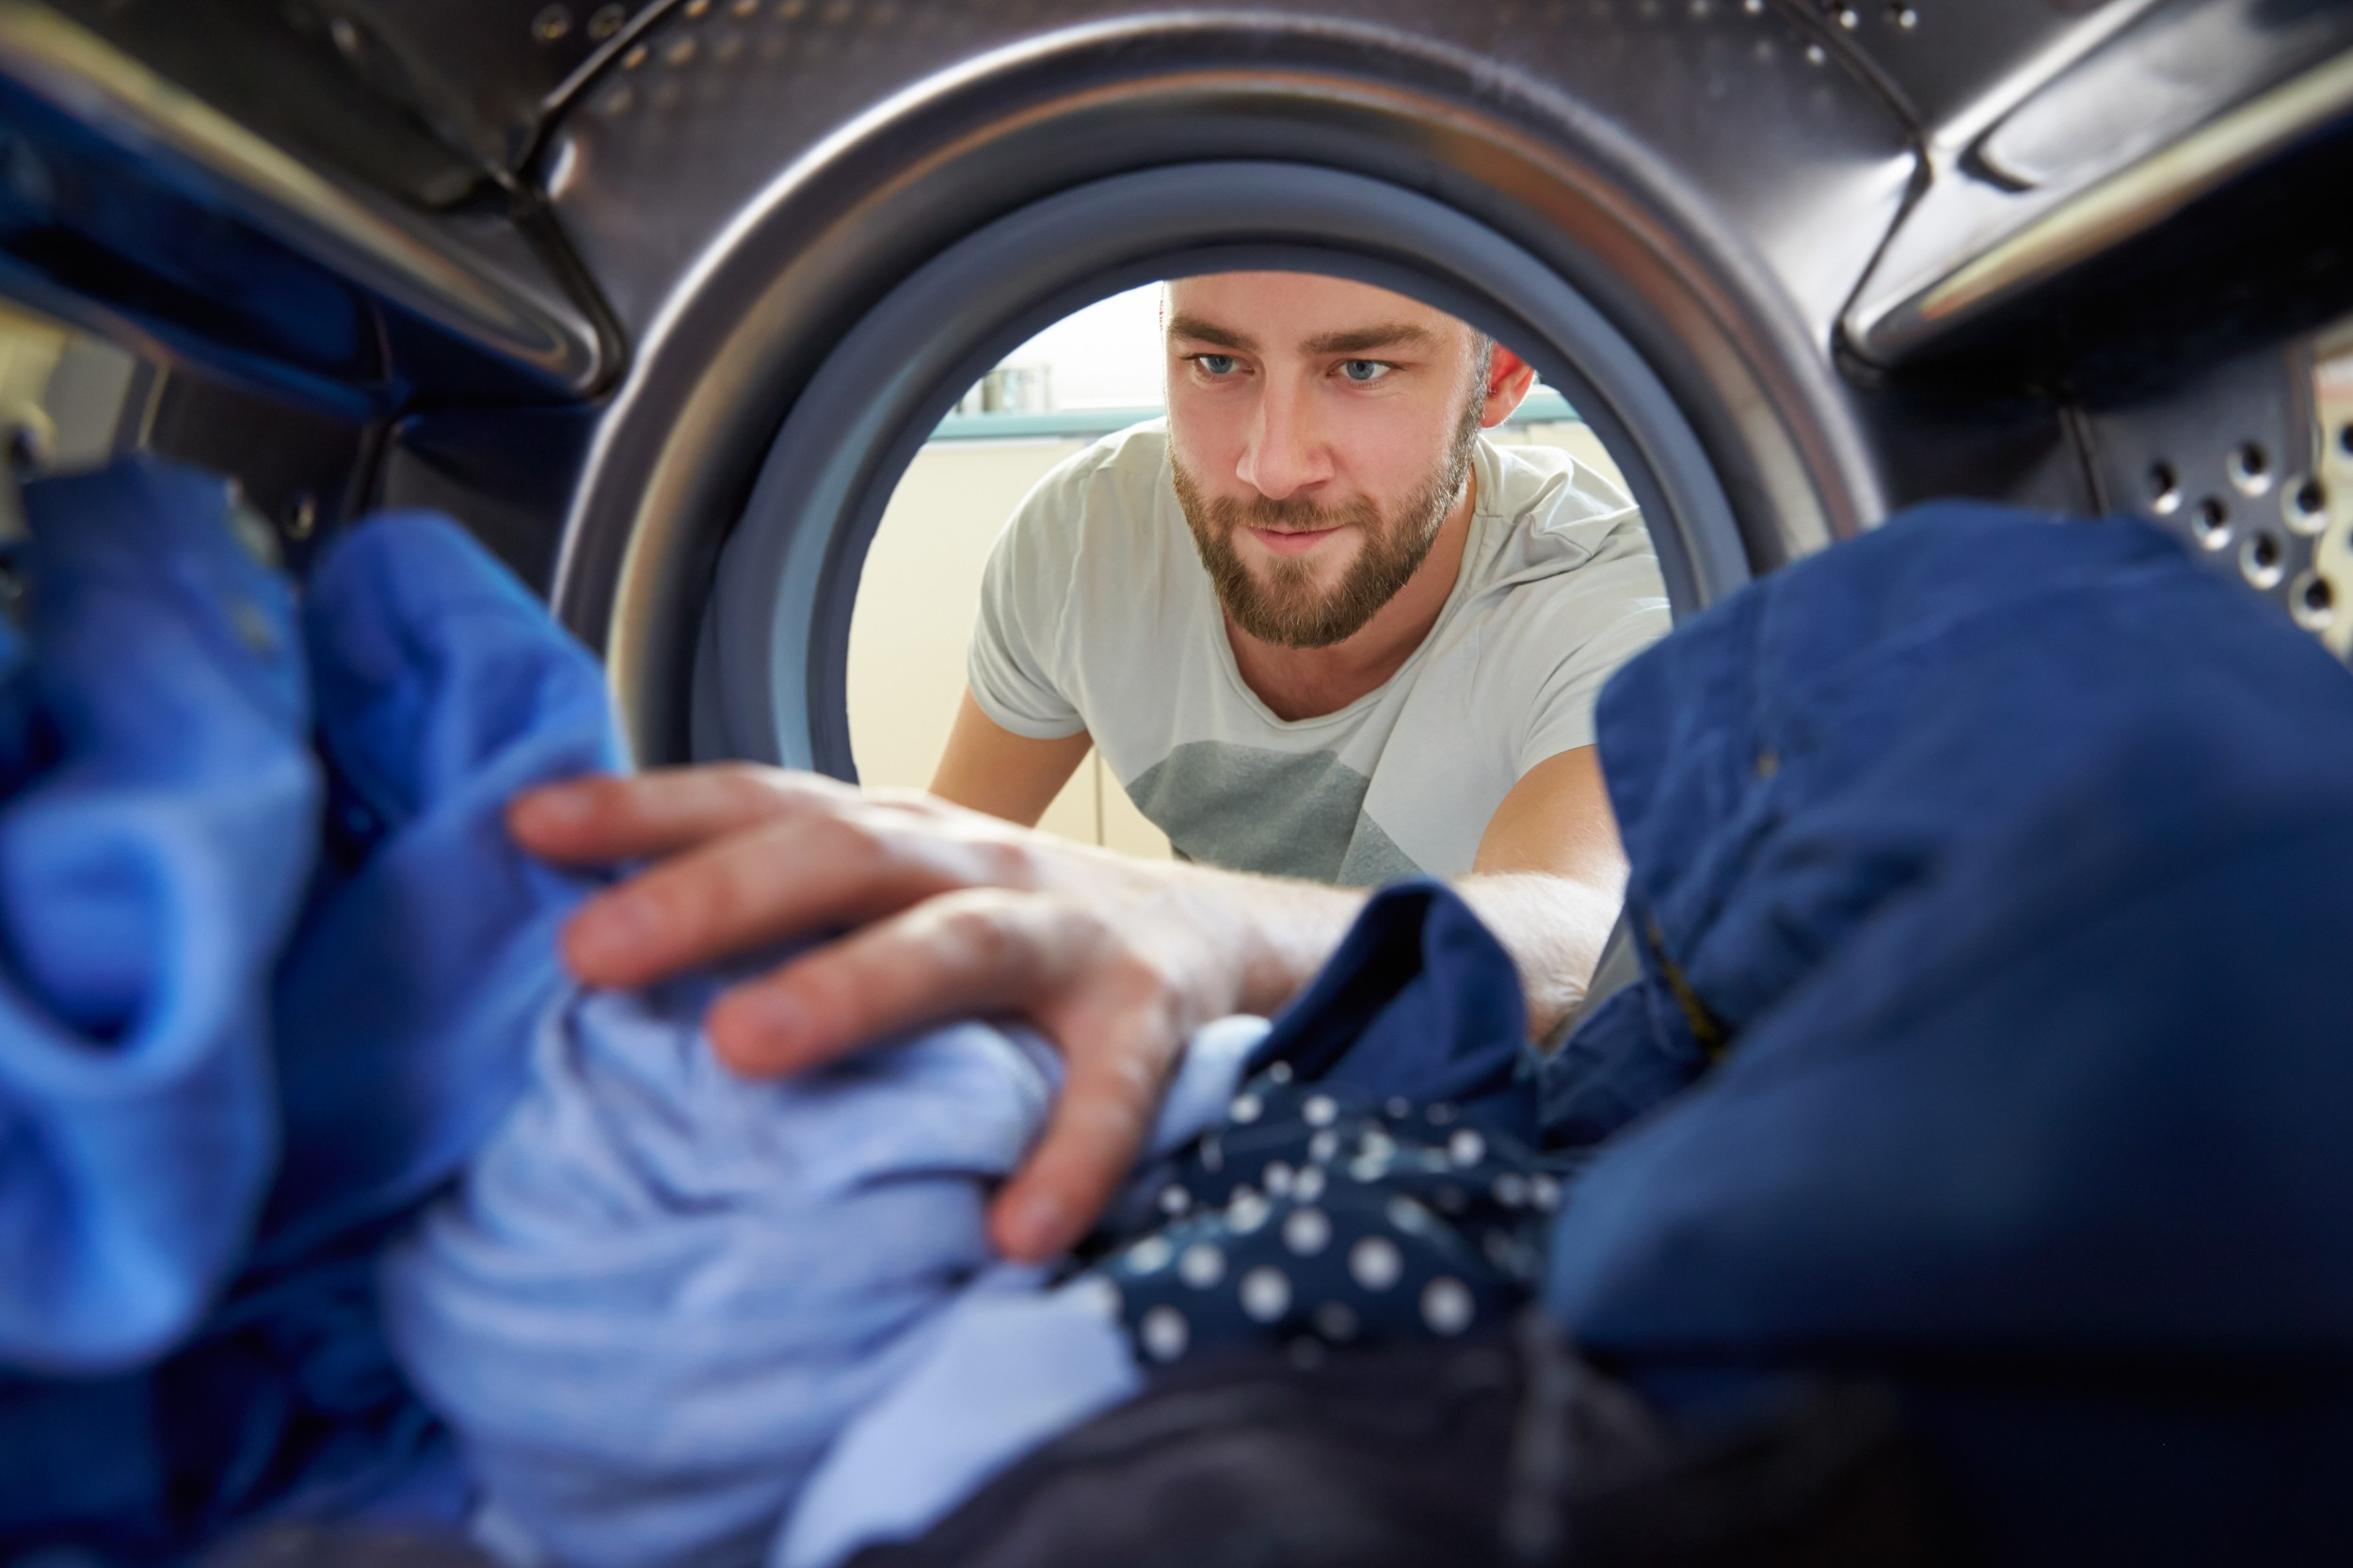 Washing requires electricity. Those who wash frequently therefore also use more electricity. This situation can be changed – ideally through social learning.